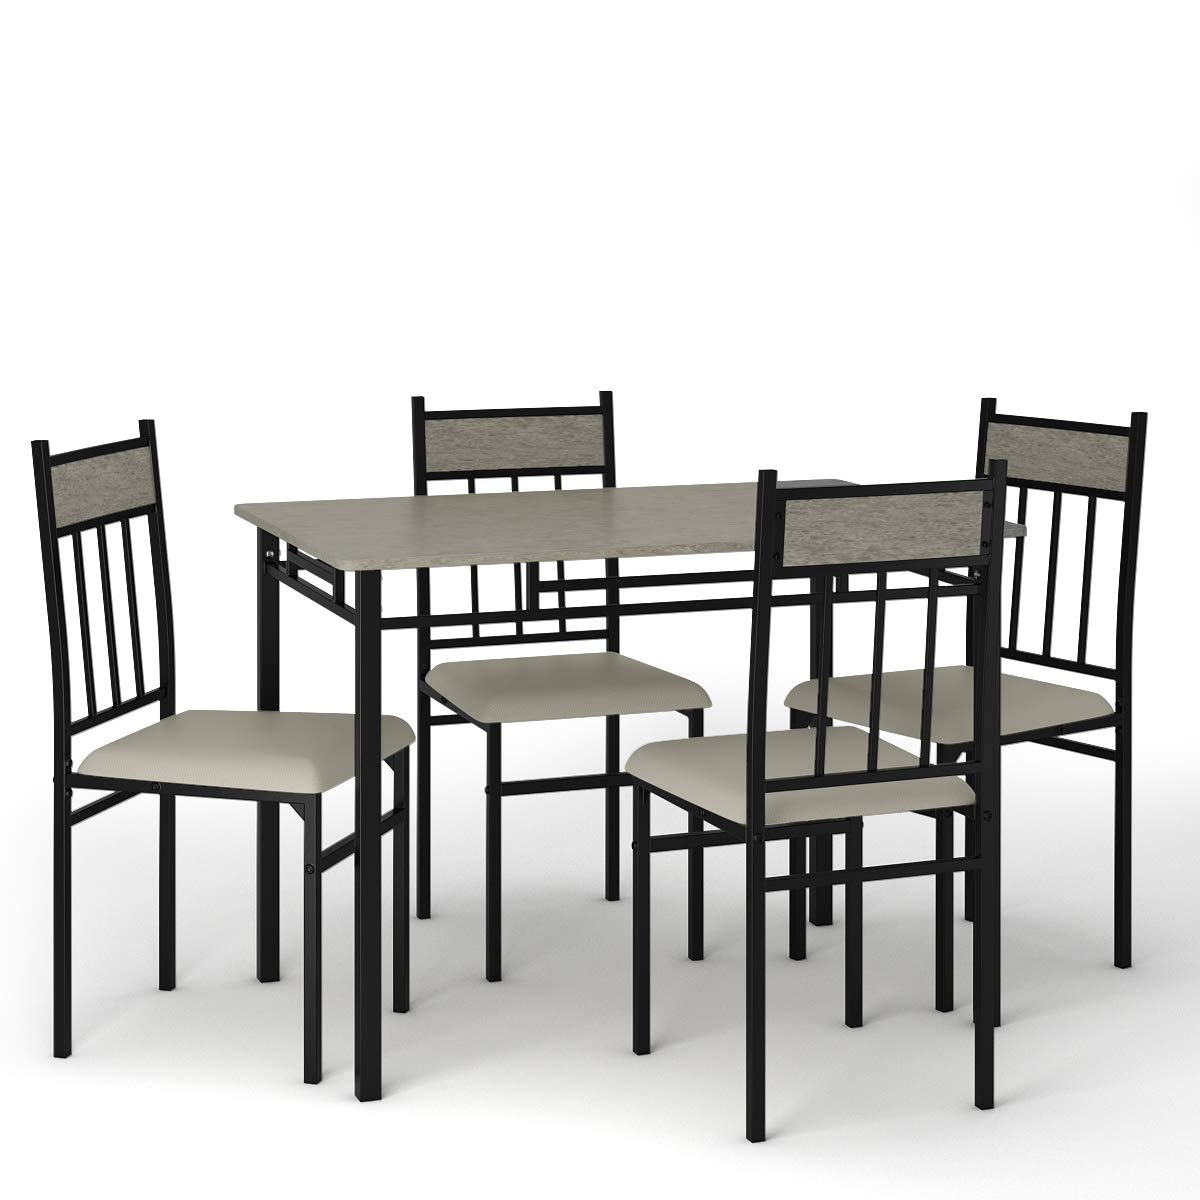 Tangkula 5 Piece Kitchen Dining Table Set, Modern Table and Chairs Set Include One Rectangular Table and Four High-Back Chairs, Metal Frame & Padded Seat, Faux Marble Table Top (Grey) by Tangkula